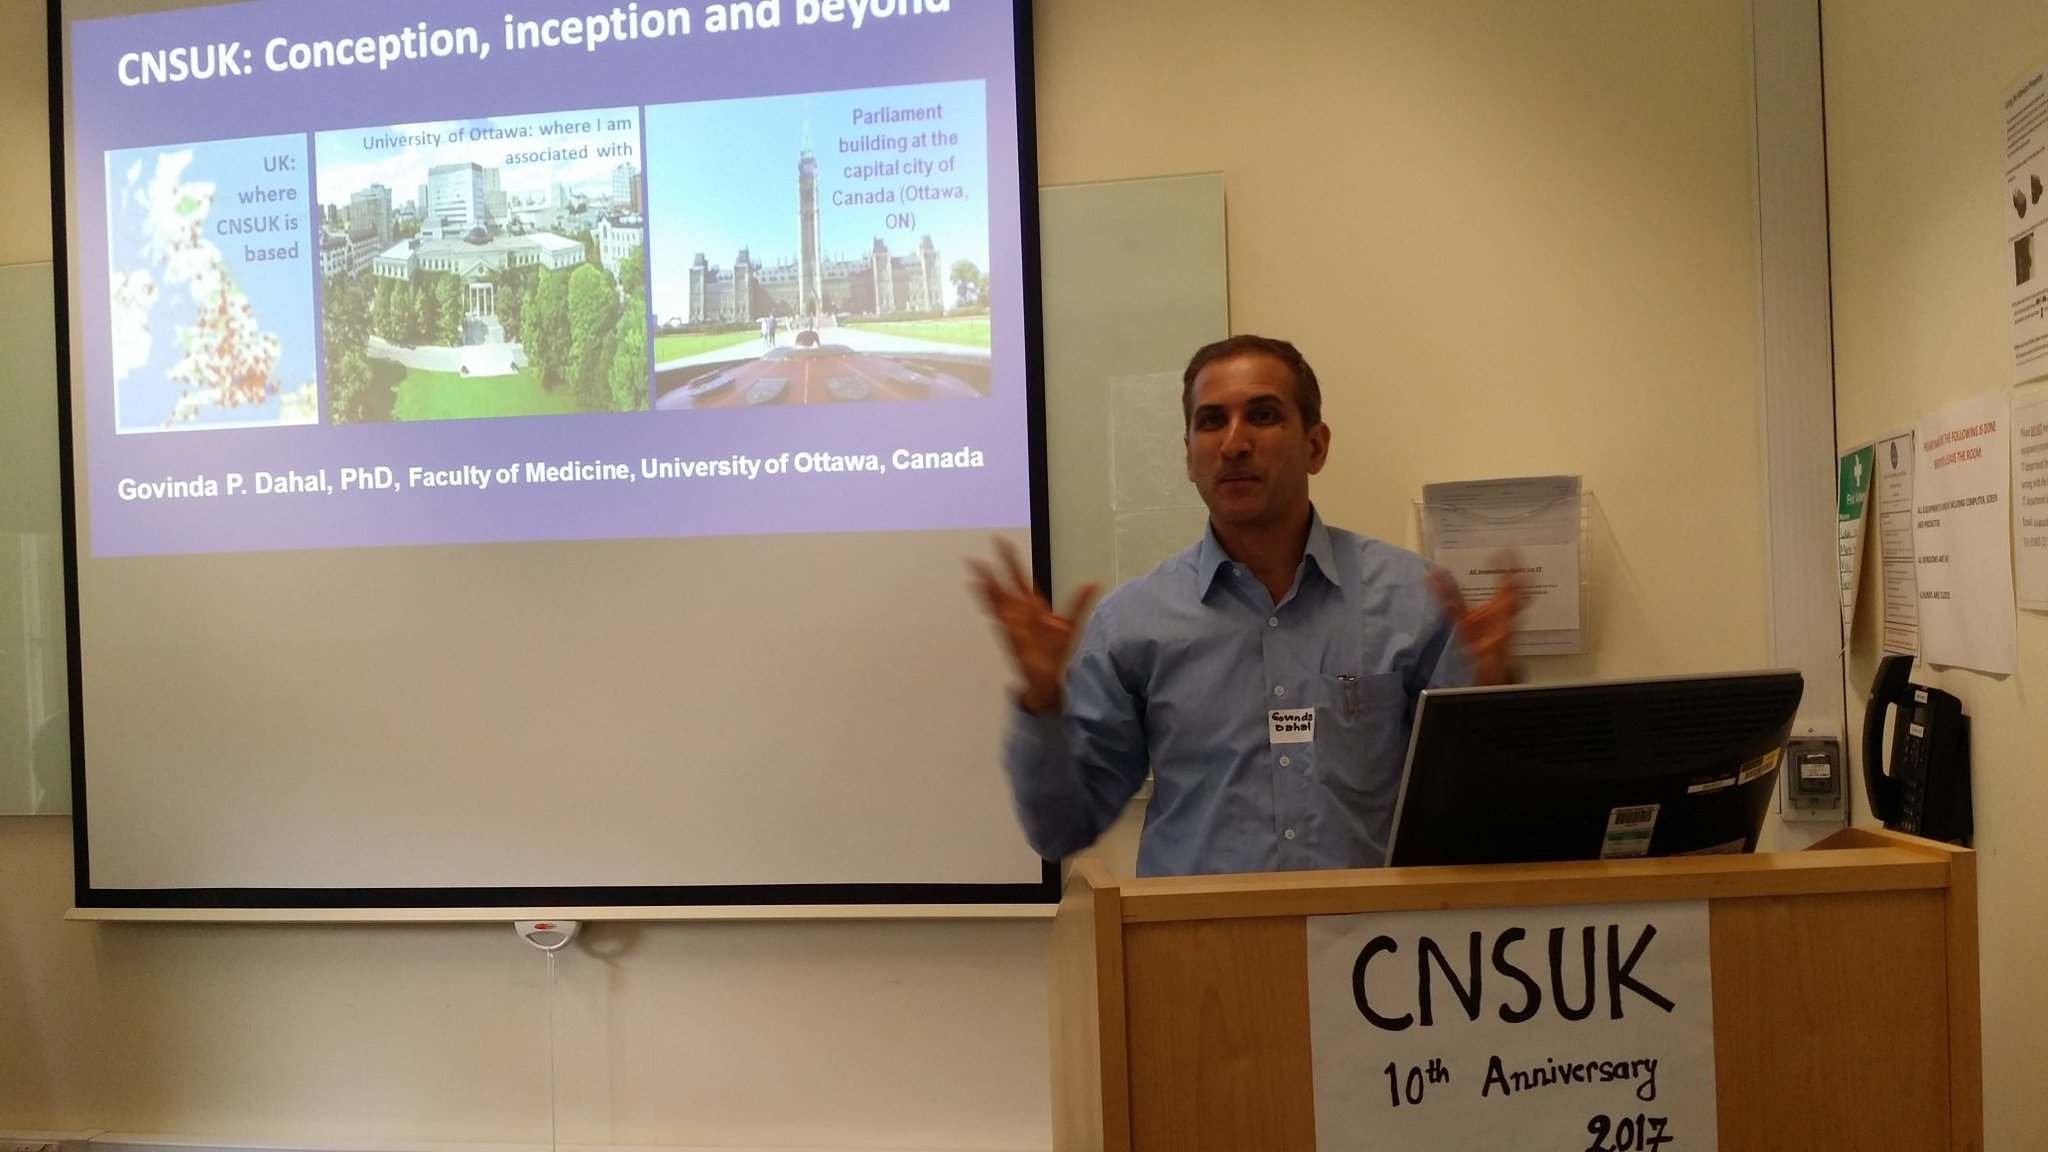 Now Dr Govinda Dahal presenting on CNSUK: Conception, inception and beyond #CNSUK10 https://t.co/hX3sS9Dy9R